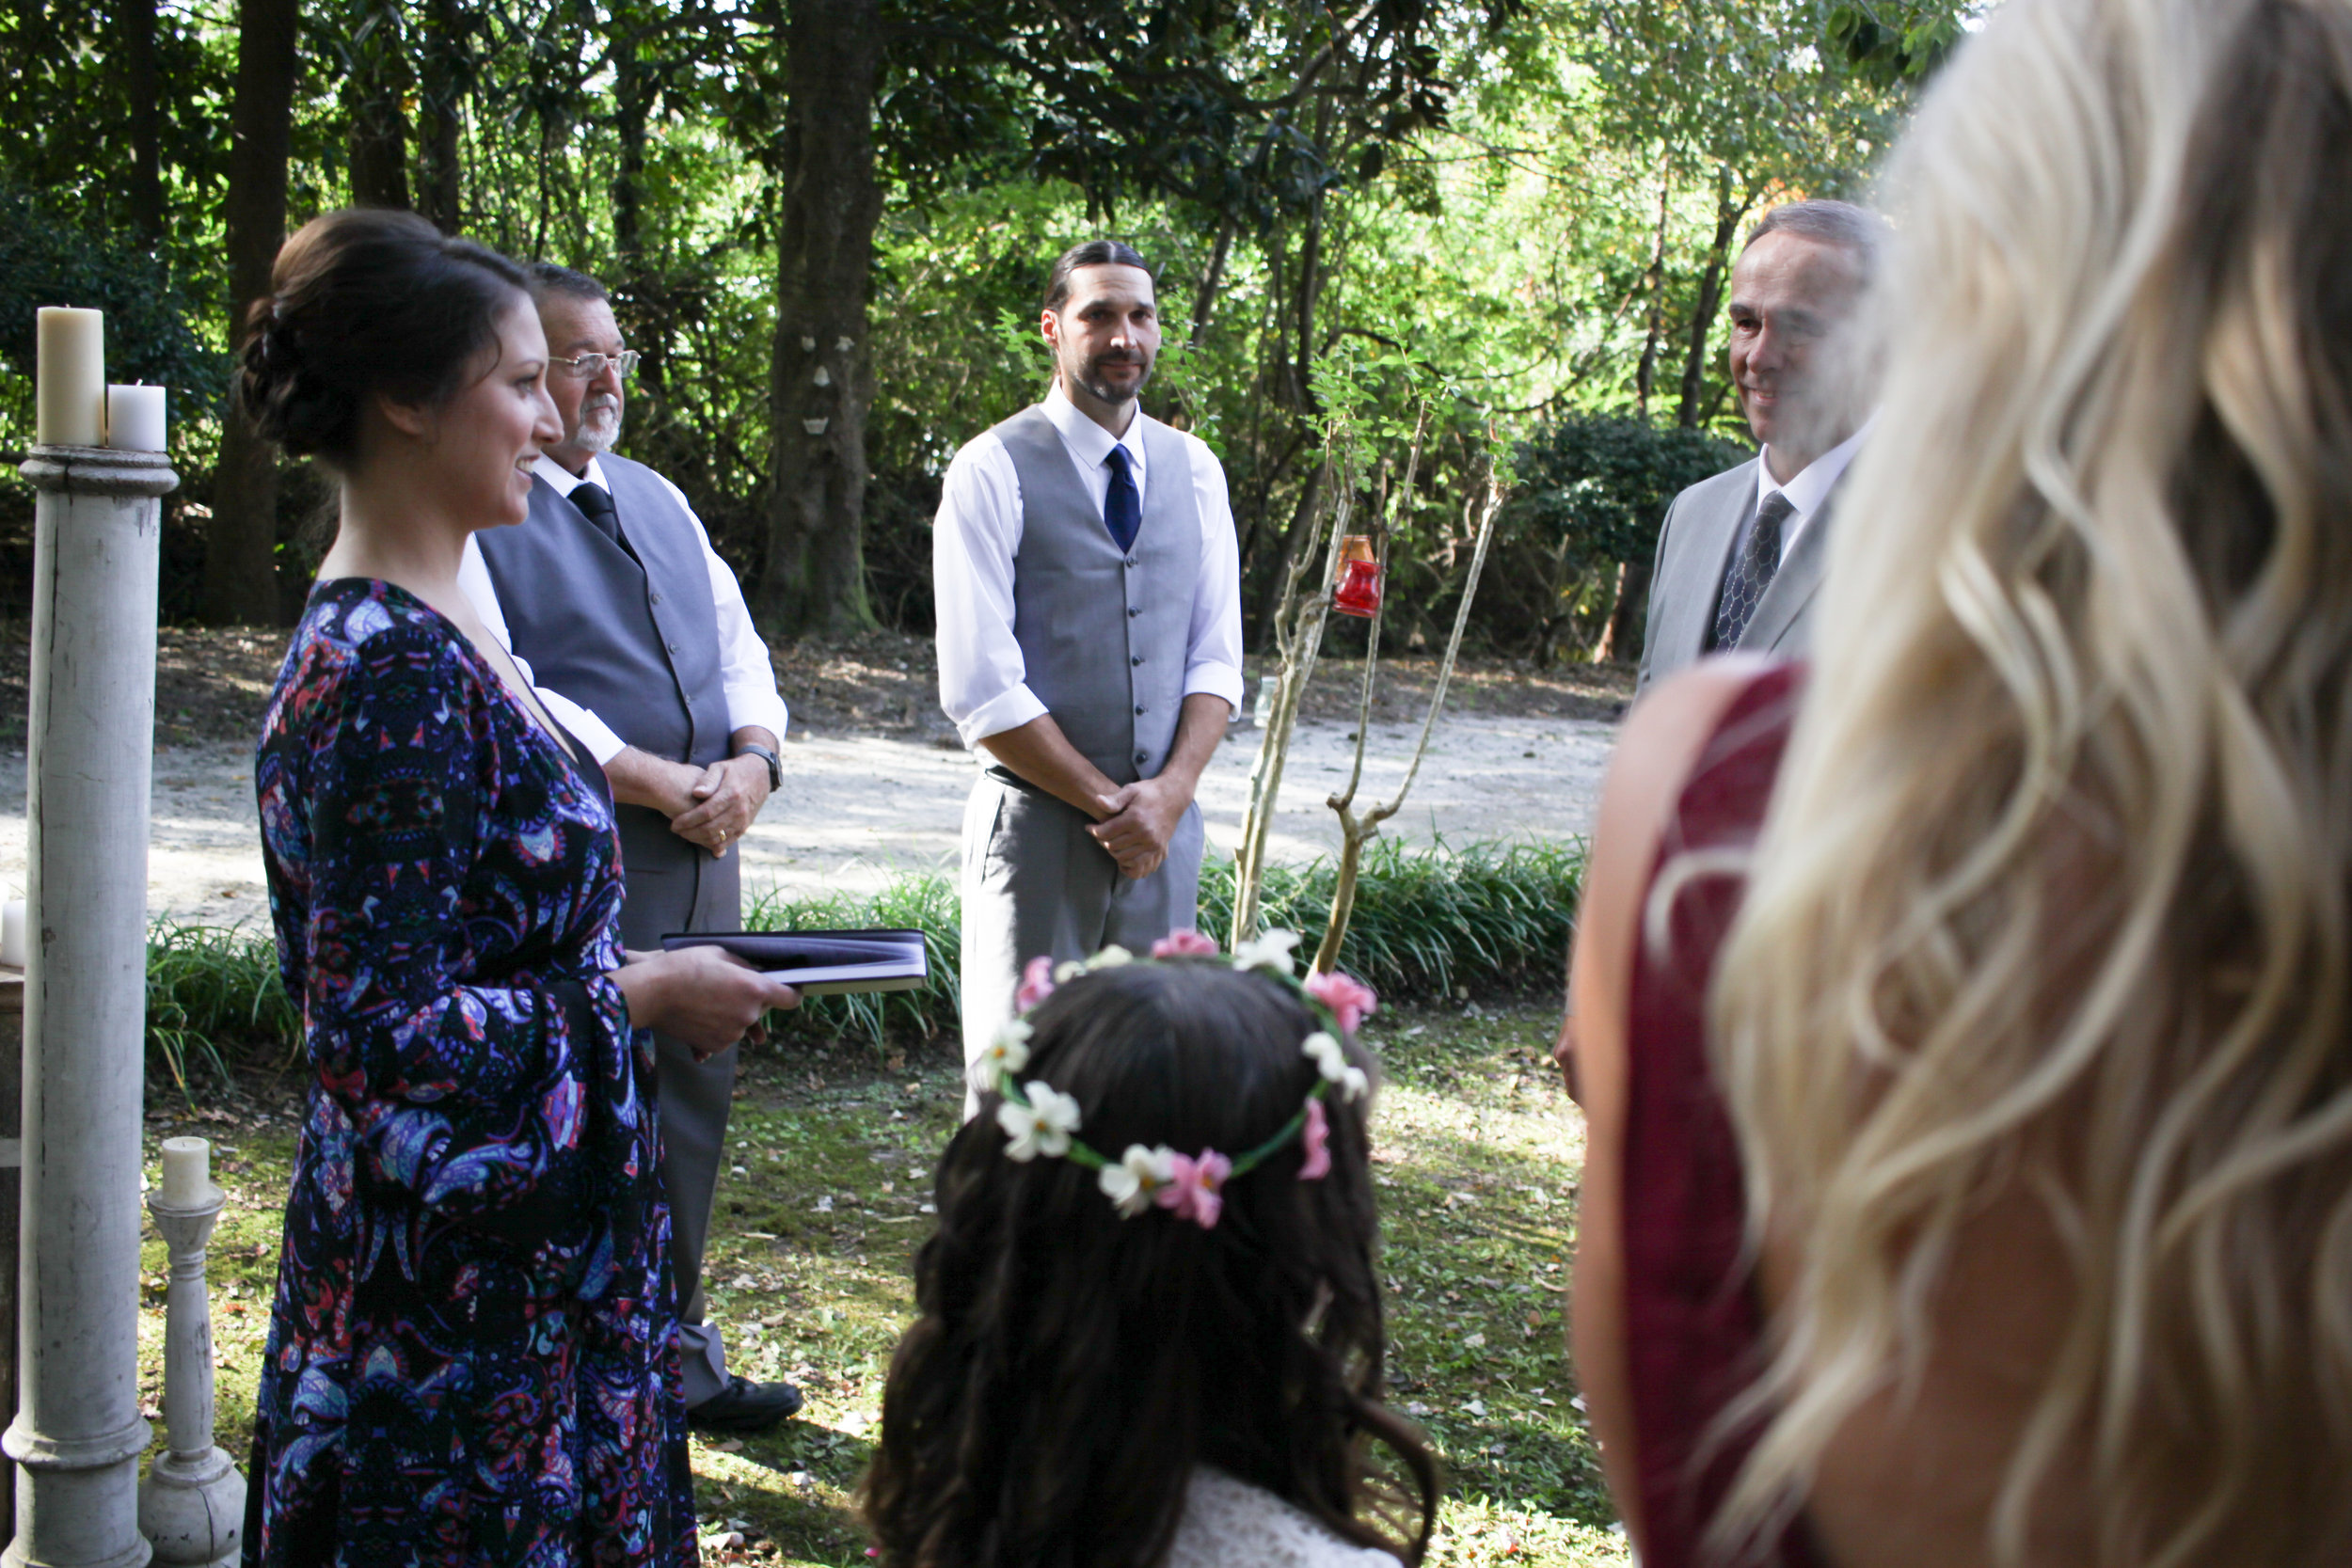 Jacqueline and Shawn Wedding (185 of 597).jpg